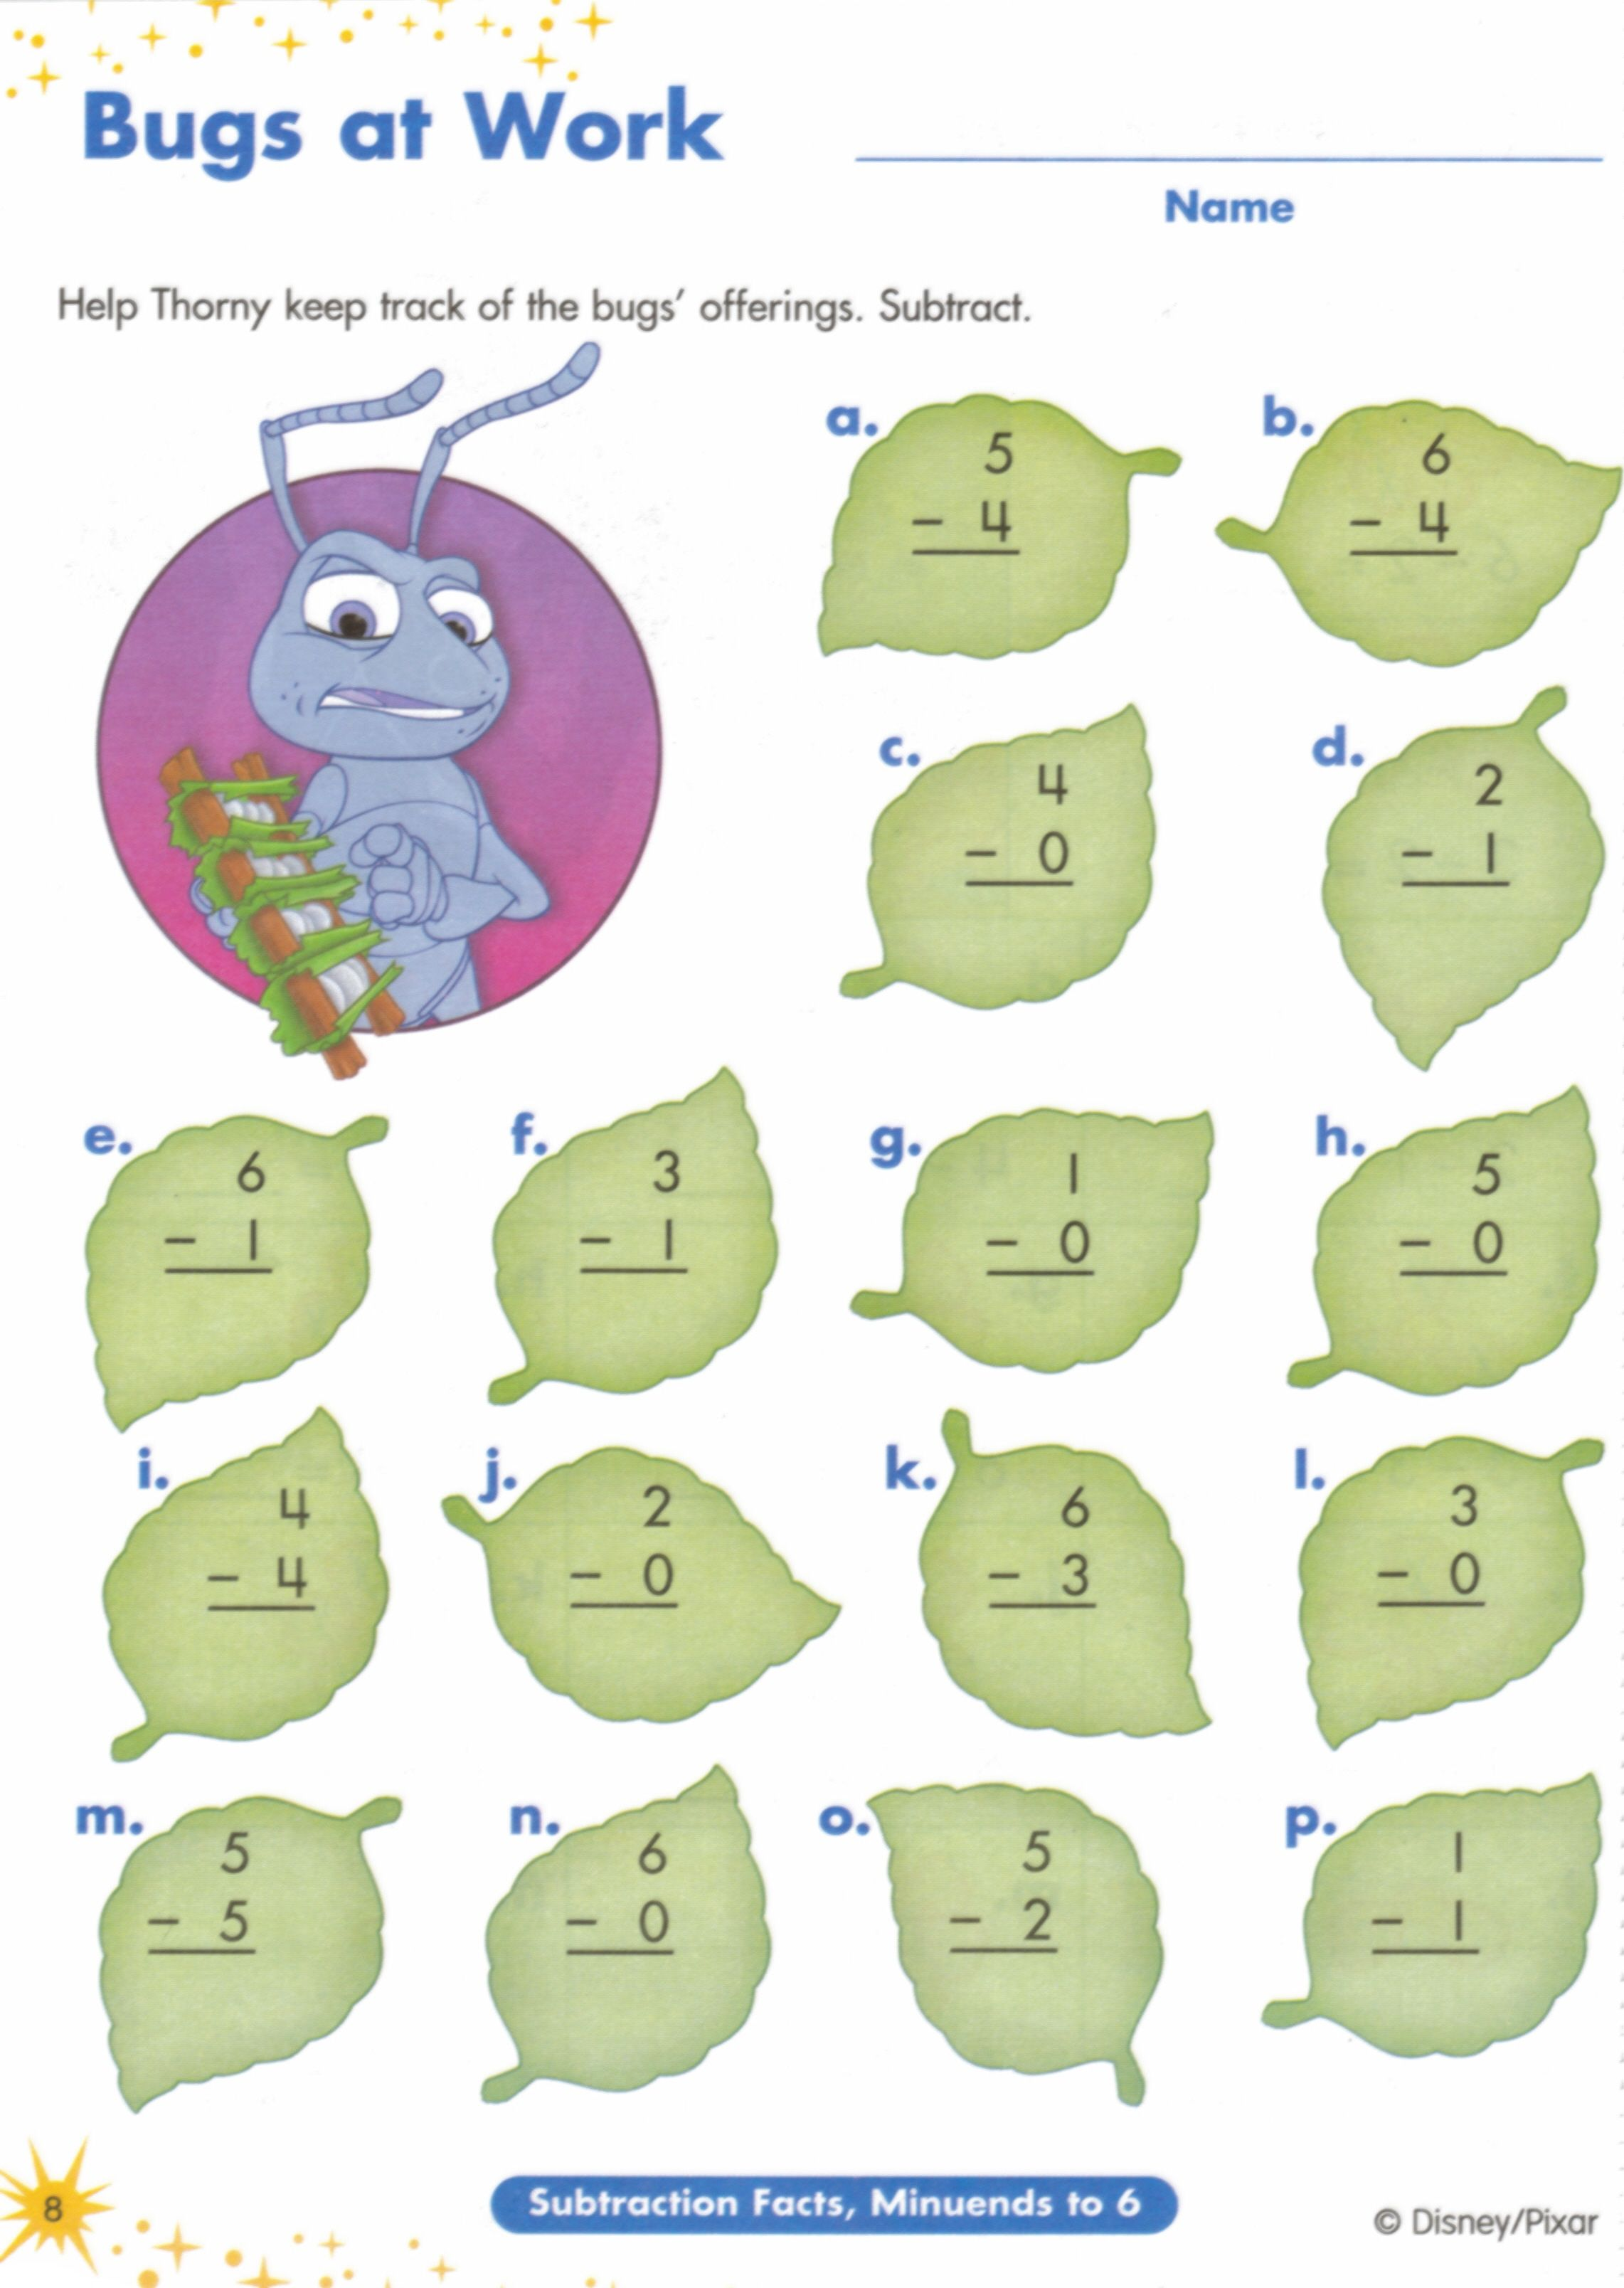 Proatmealus  Pleasing  Images About Worksheets On Pinterest  Fun Facts For Kids  With Licious  Images About Worksheets On Pinterest  Fun Facts For Kids Earth Day Worksheets And Jungles With Endearing Computer Class Worksheets Also Nick Jr Worksheets In Addition Subject Verb Agreement Worksheets Th Grade And Division Worksheets Grade  As Well As Closing Costs Worksheet Additionally Self Awareness Worksheet From Pinterestcom With Proatmealus  Licious  Images About Worksheets On Pinterest  Fun Facts For Kids  With Endearing  Images About Worksheets On Pinterest  Fun Facts For Kids Earth Day Worksheets And Jungles And Pleasing Computer Class Worksheets Also Nick Jr Worksheets In Addition Subject Verb Agreement Worksheets Th Grade From Pinterestcom